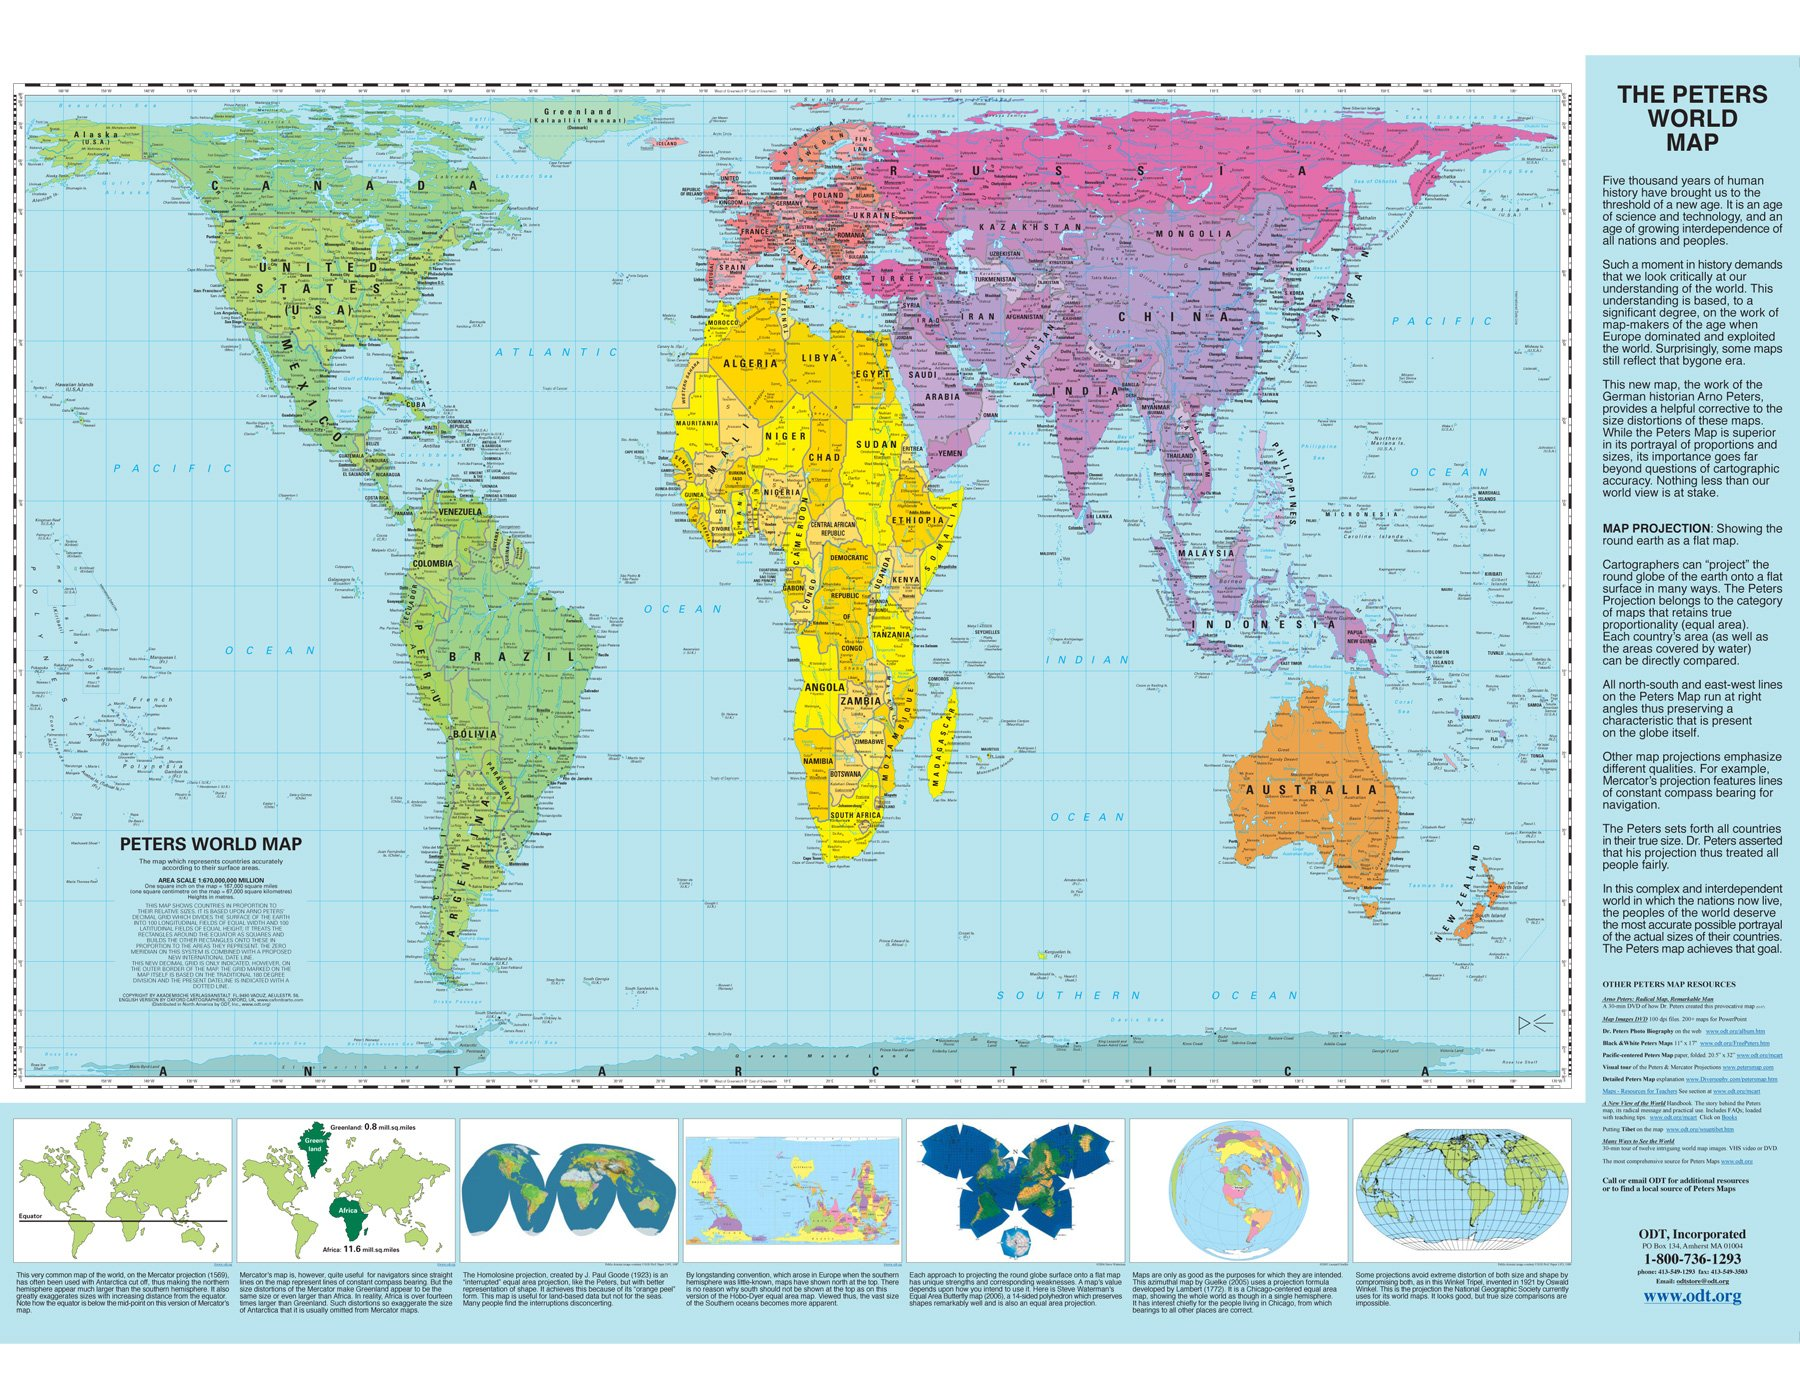 Peters projection world map laminated arno peters odtmaps peters projection world map laminated arno peters odtmaps oxford cartographers 9781931057035 amazon books gumiabroncs Gallery